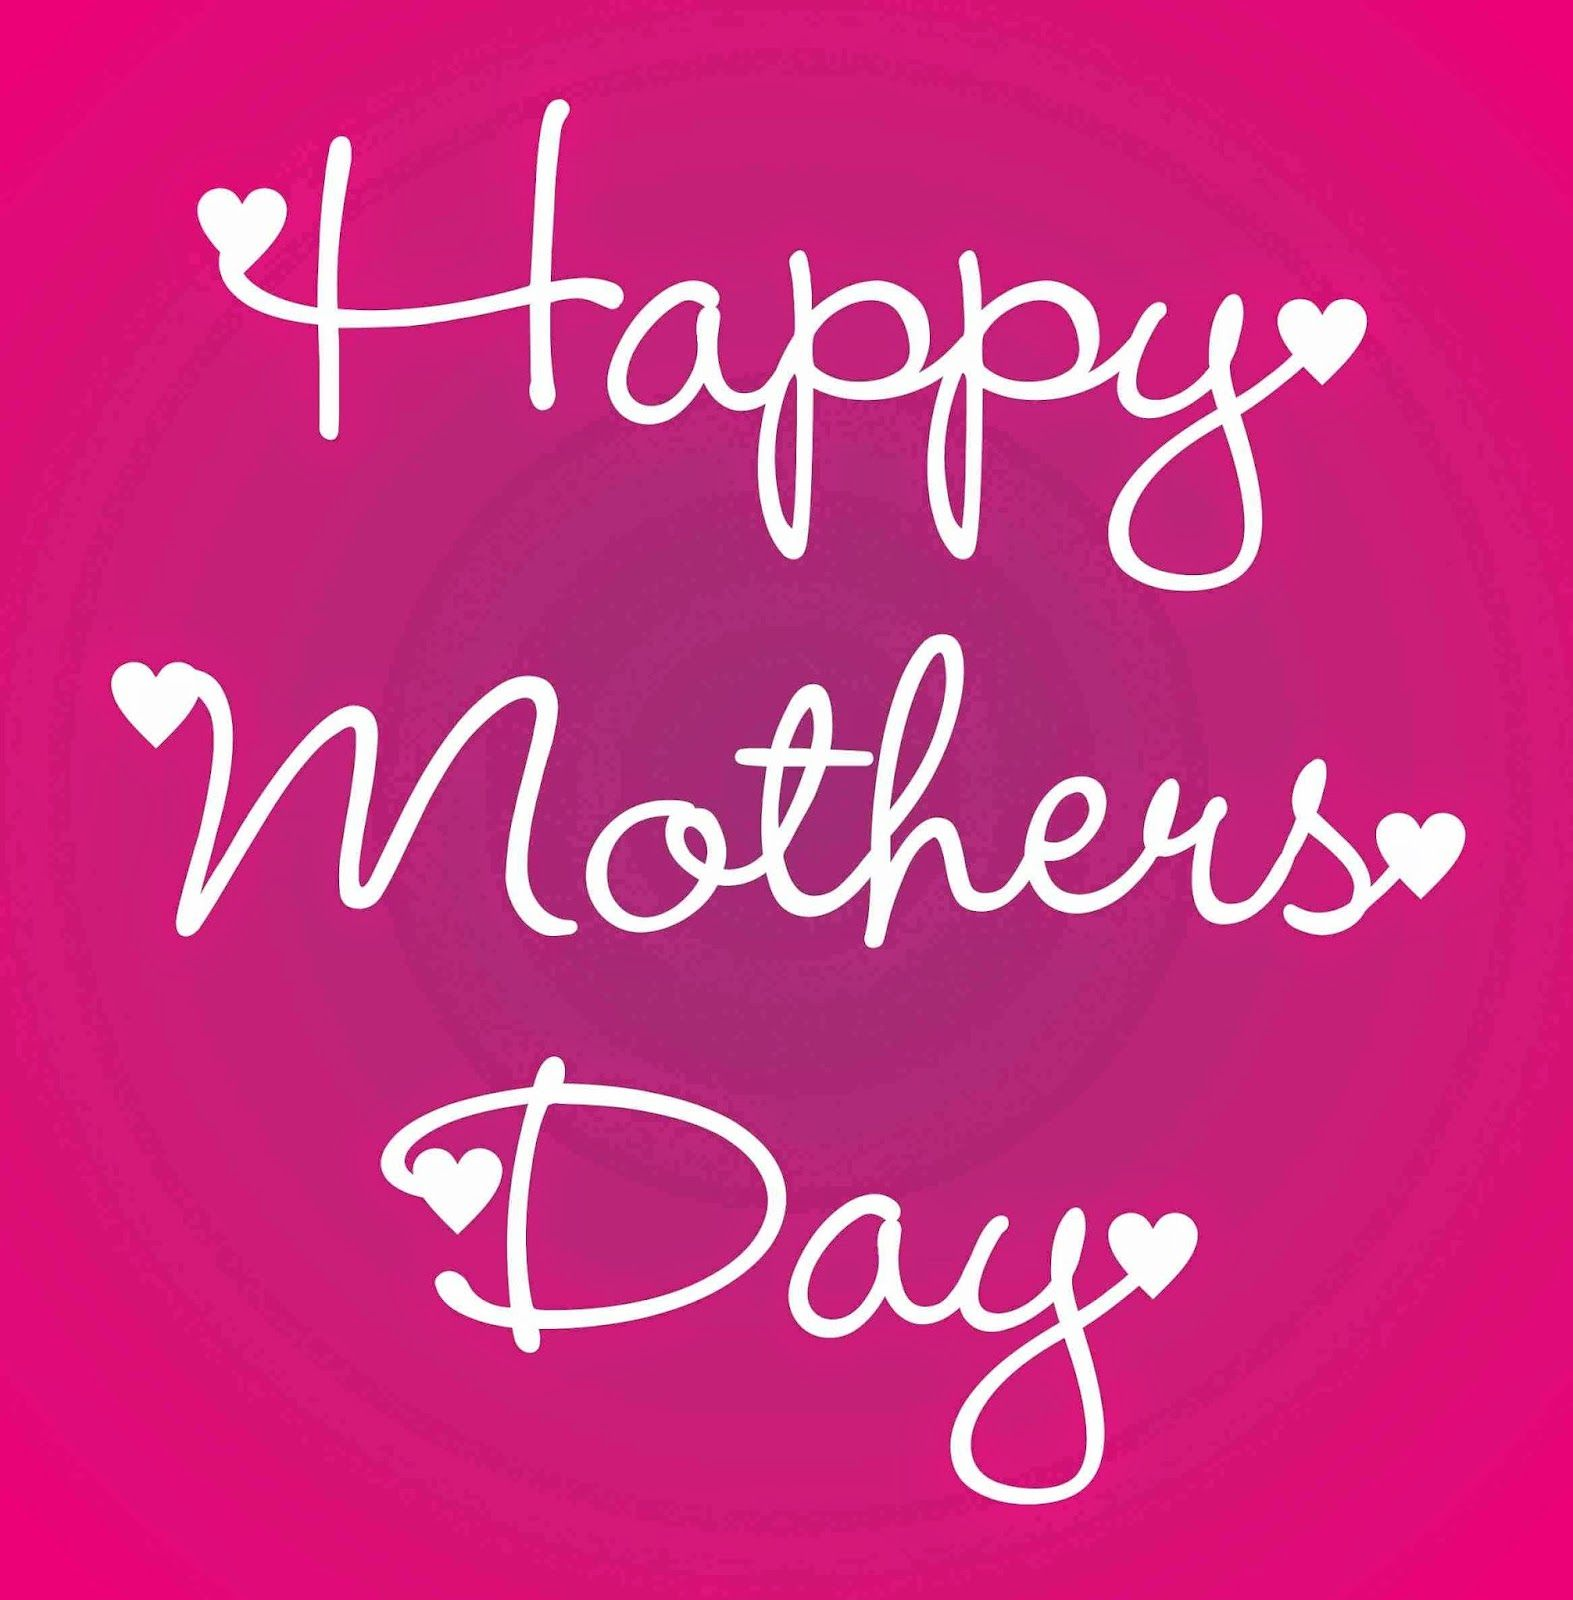 Smartly Hindi Happy Mors Day Sister From Anor Mister Happy Mors Day Sister Sayings Mor Day Quotes Mors Day Happymors Day Happy Mors Day Images Mor Day Quotes Happy Mors Day Image Result inspiration Happy Mothers Day Sister